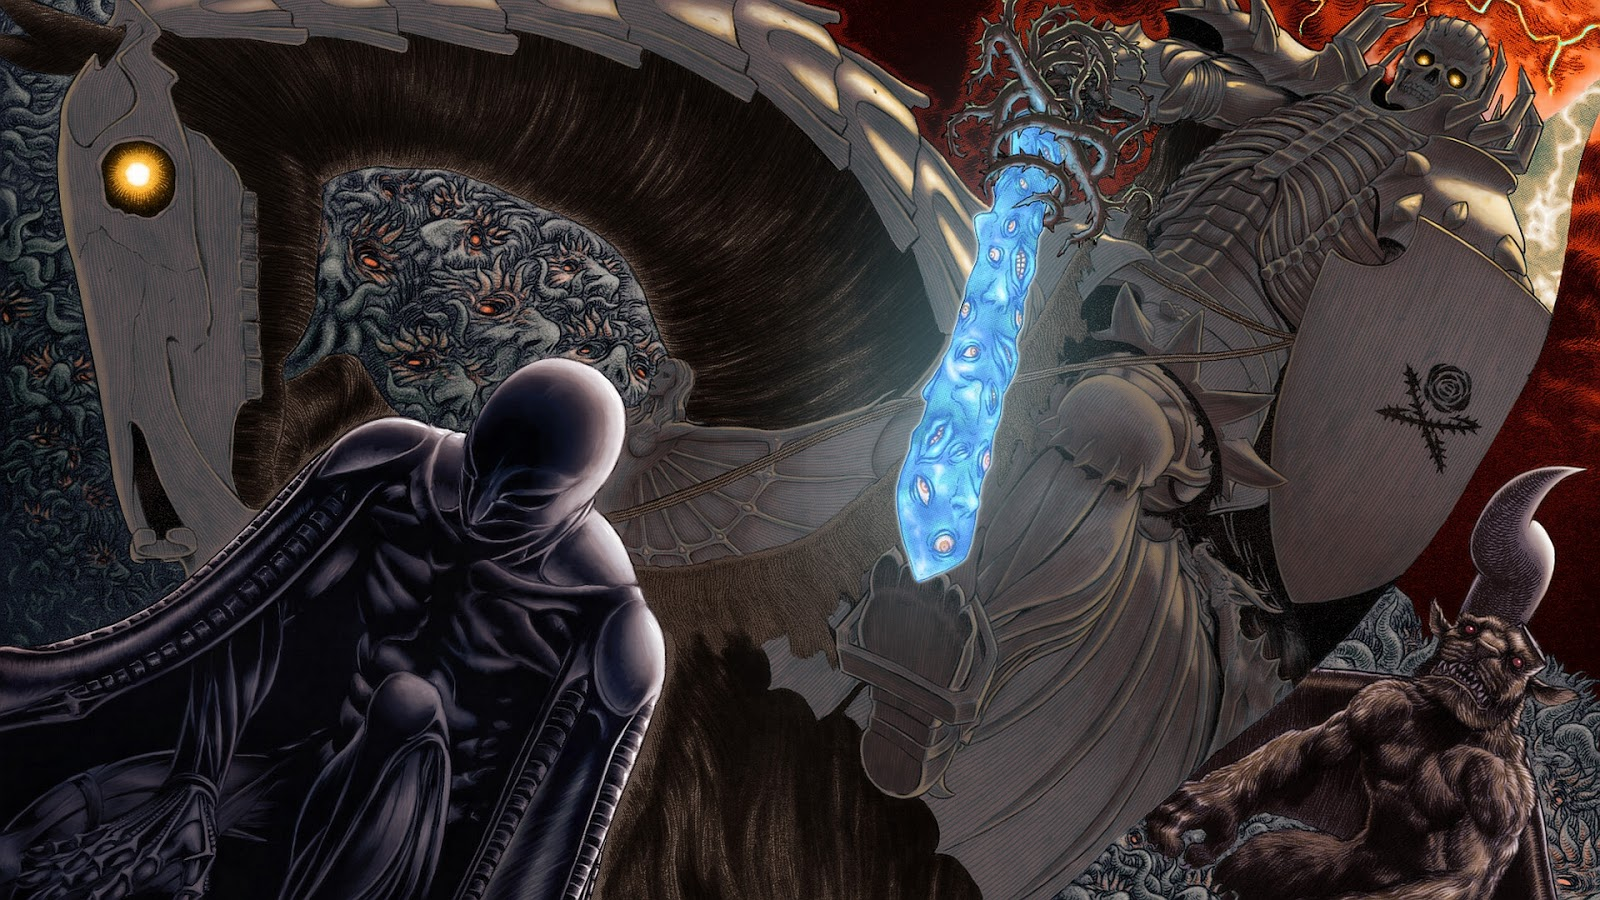 berserk wallpapers free download - photo #31